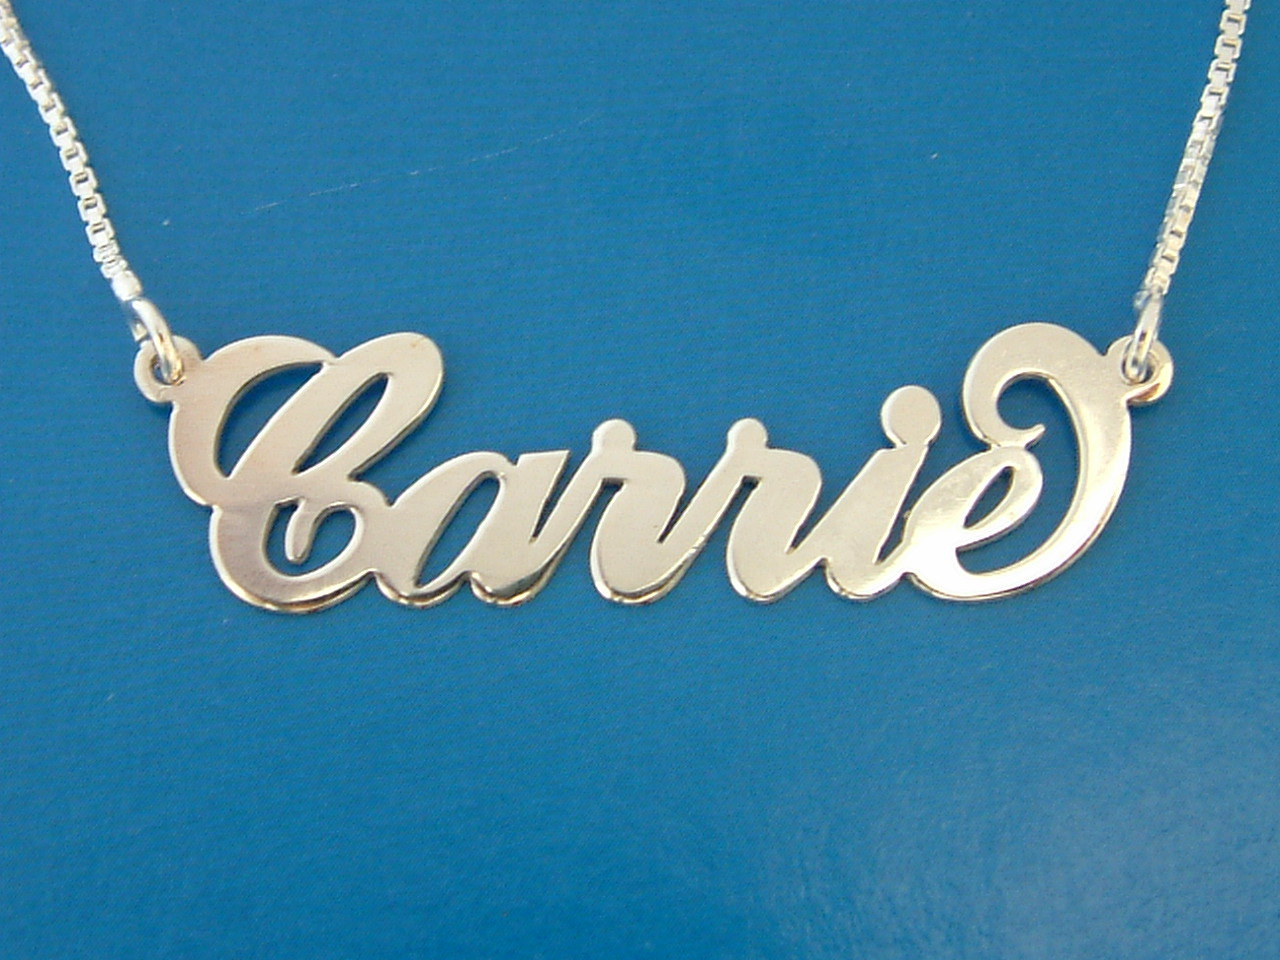 Carrie Sex and City Style Name Necklace nameplate pendant chain FREE shipping Sterling Silver ORDER ANY name! personalized jewelry Ashley